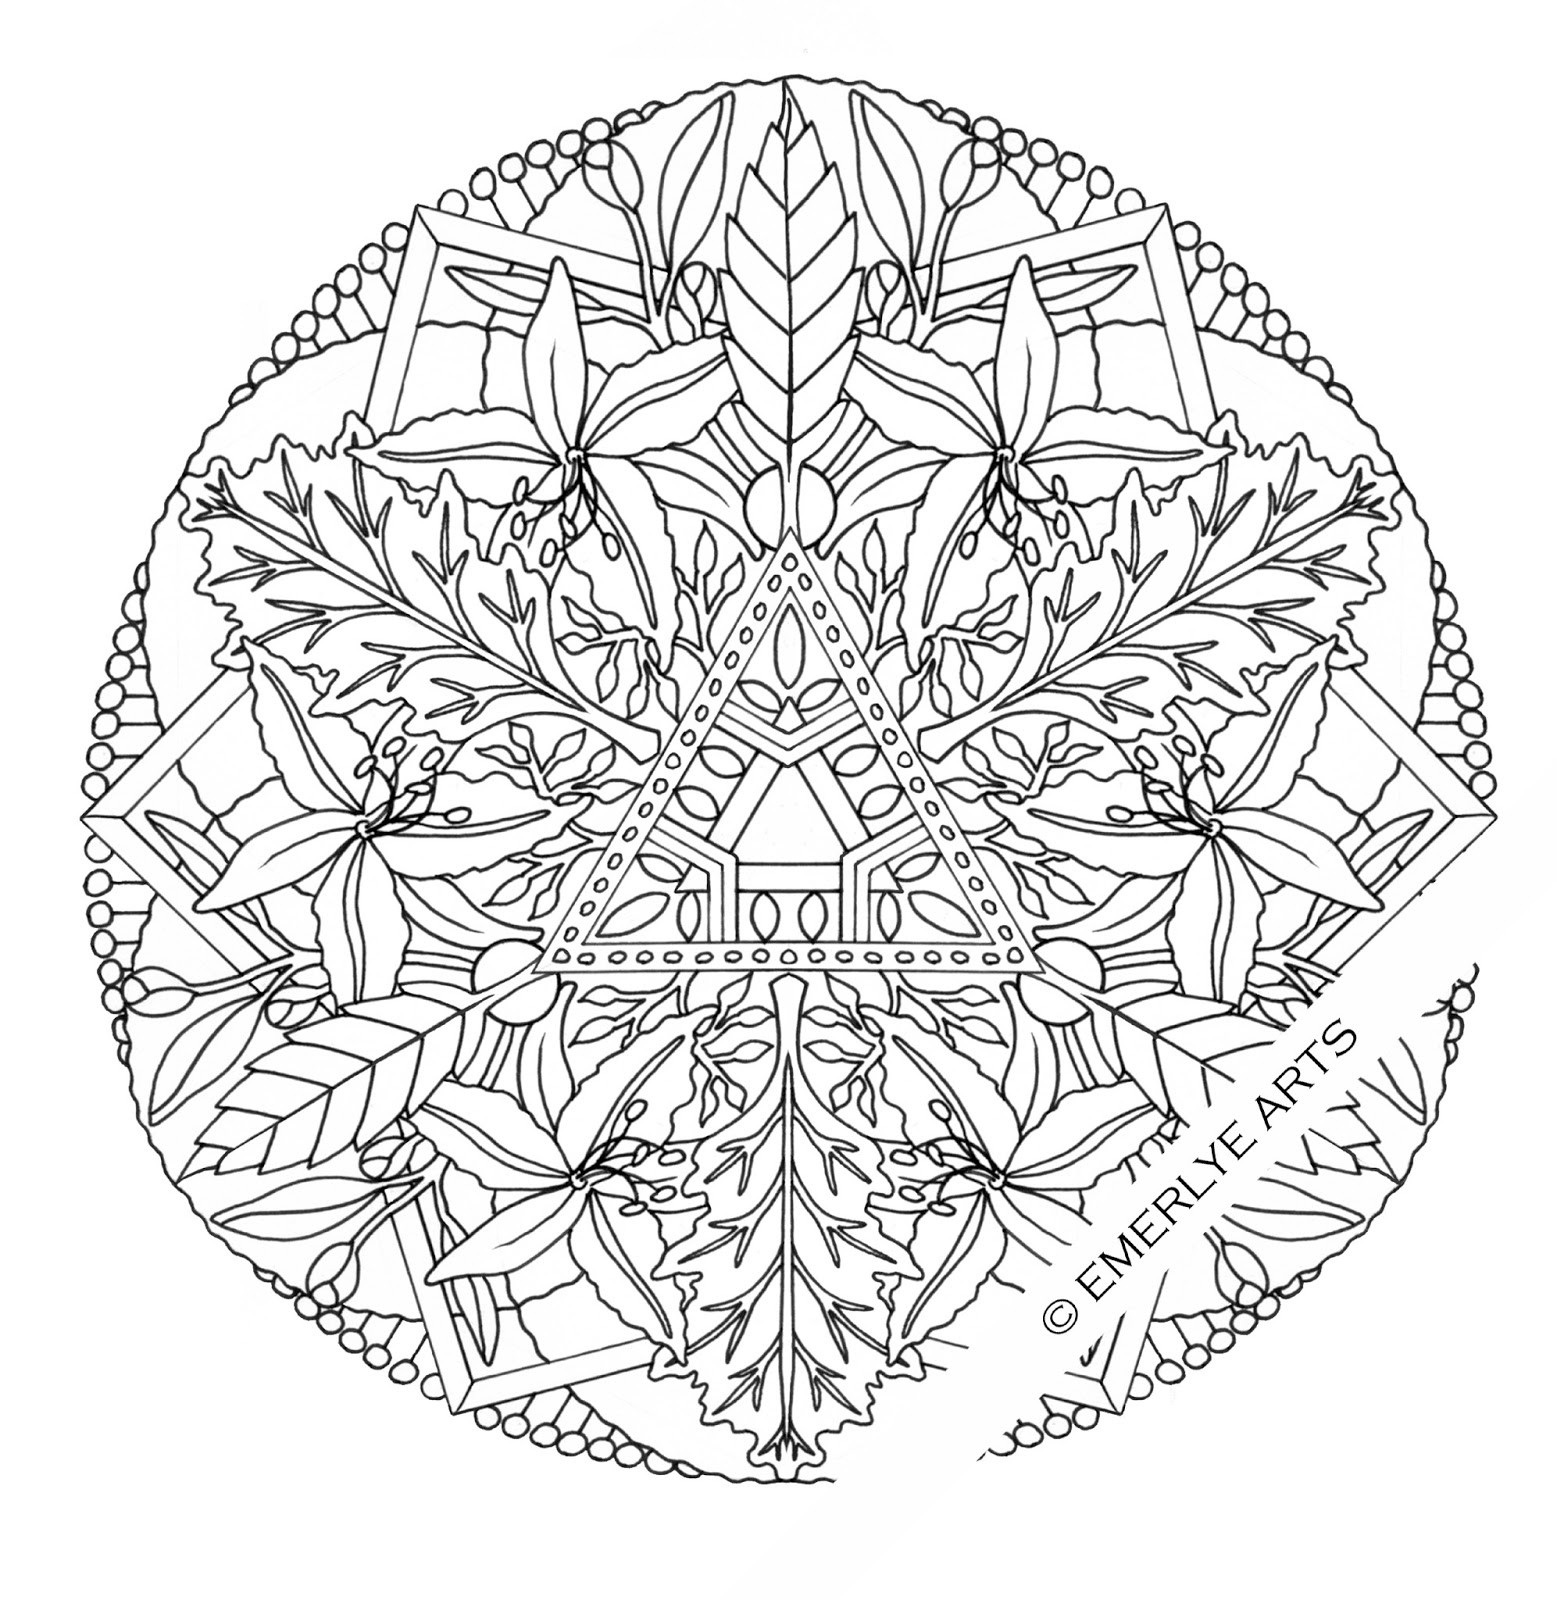 Best ideas about Coloring Books Adult . Save or Pin Animal Coloring Pages for Adults Bestofcoloring Now.